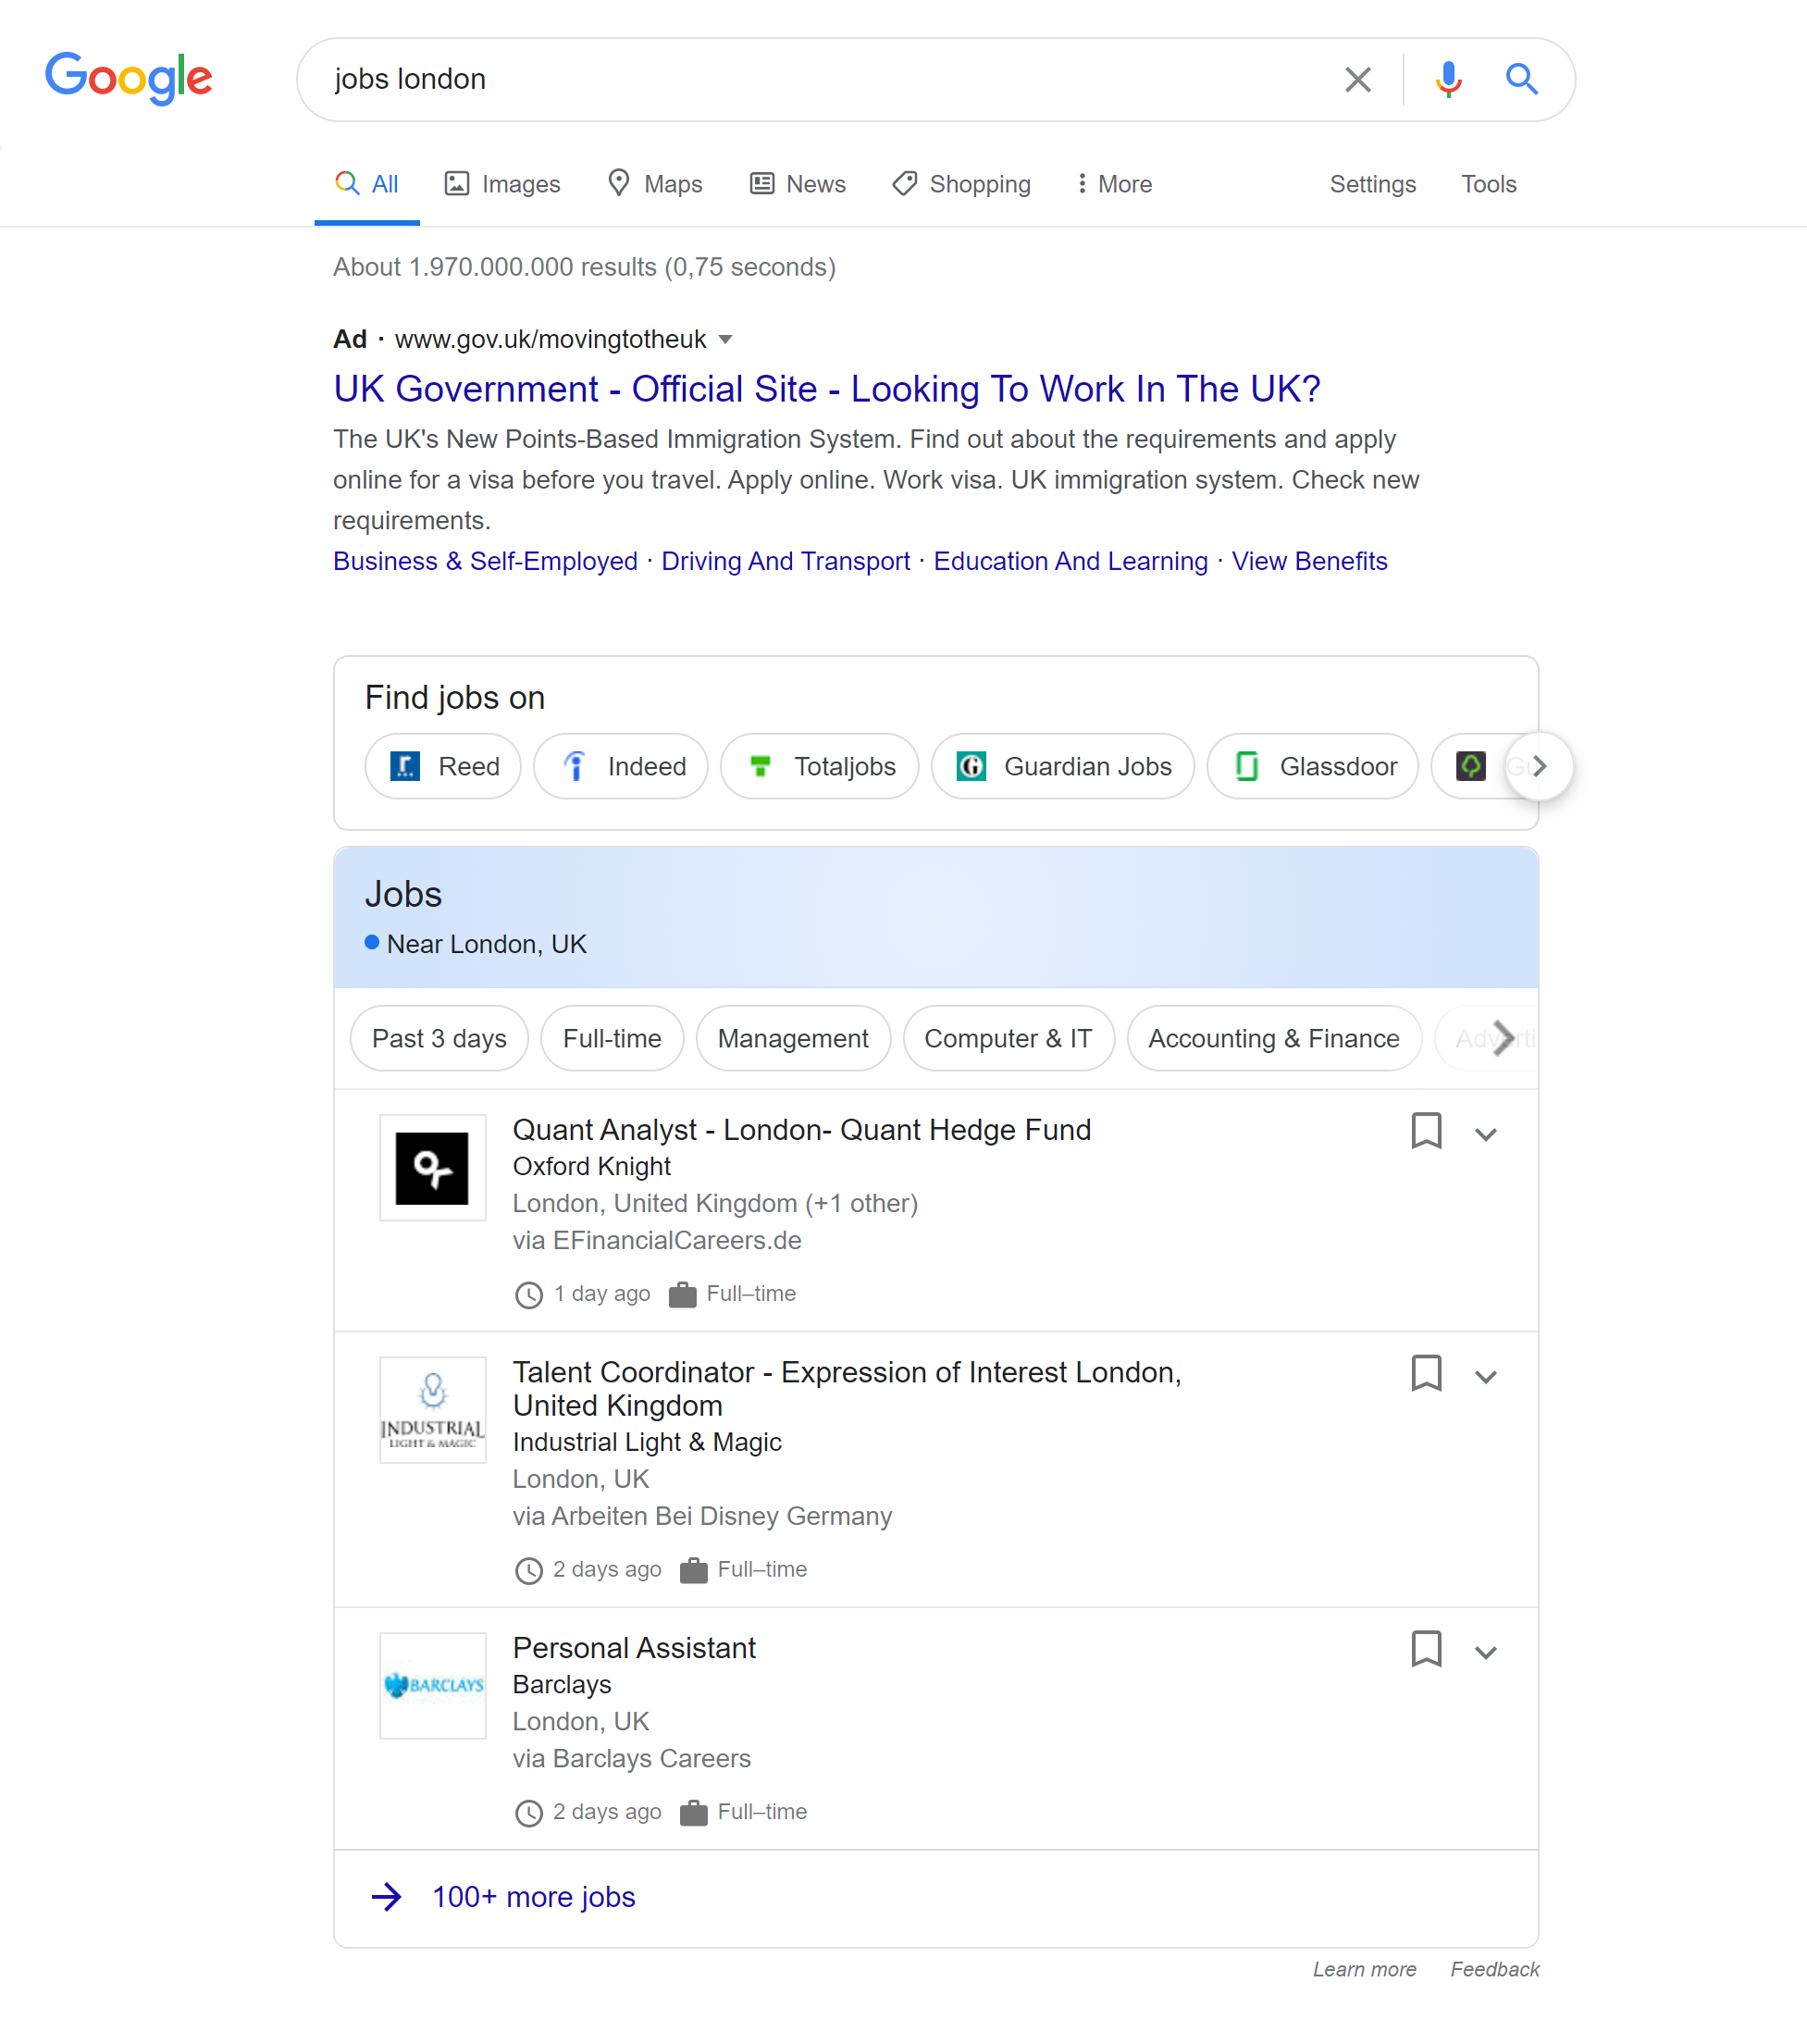 Google's job search feature